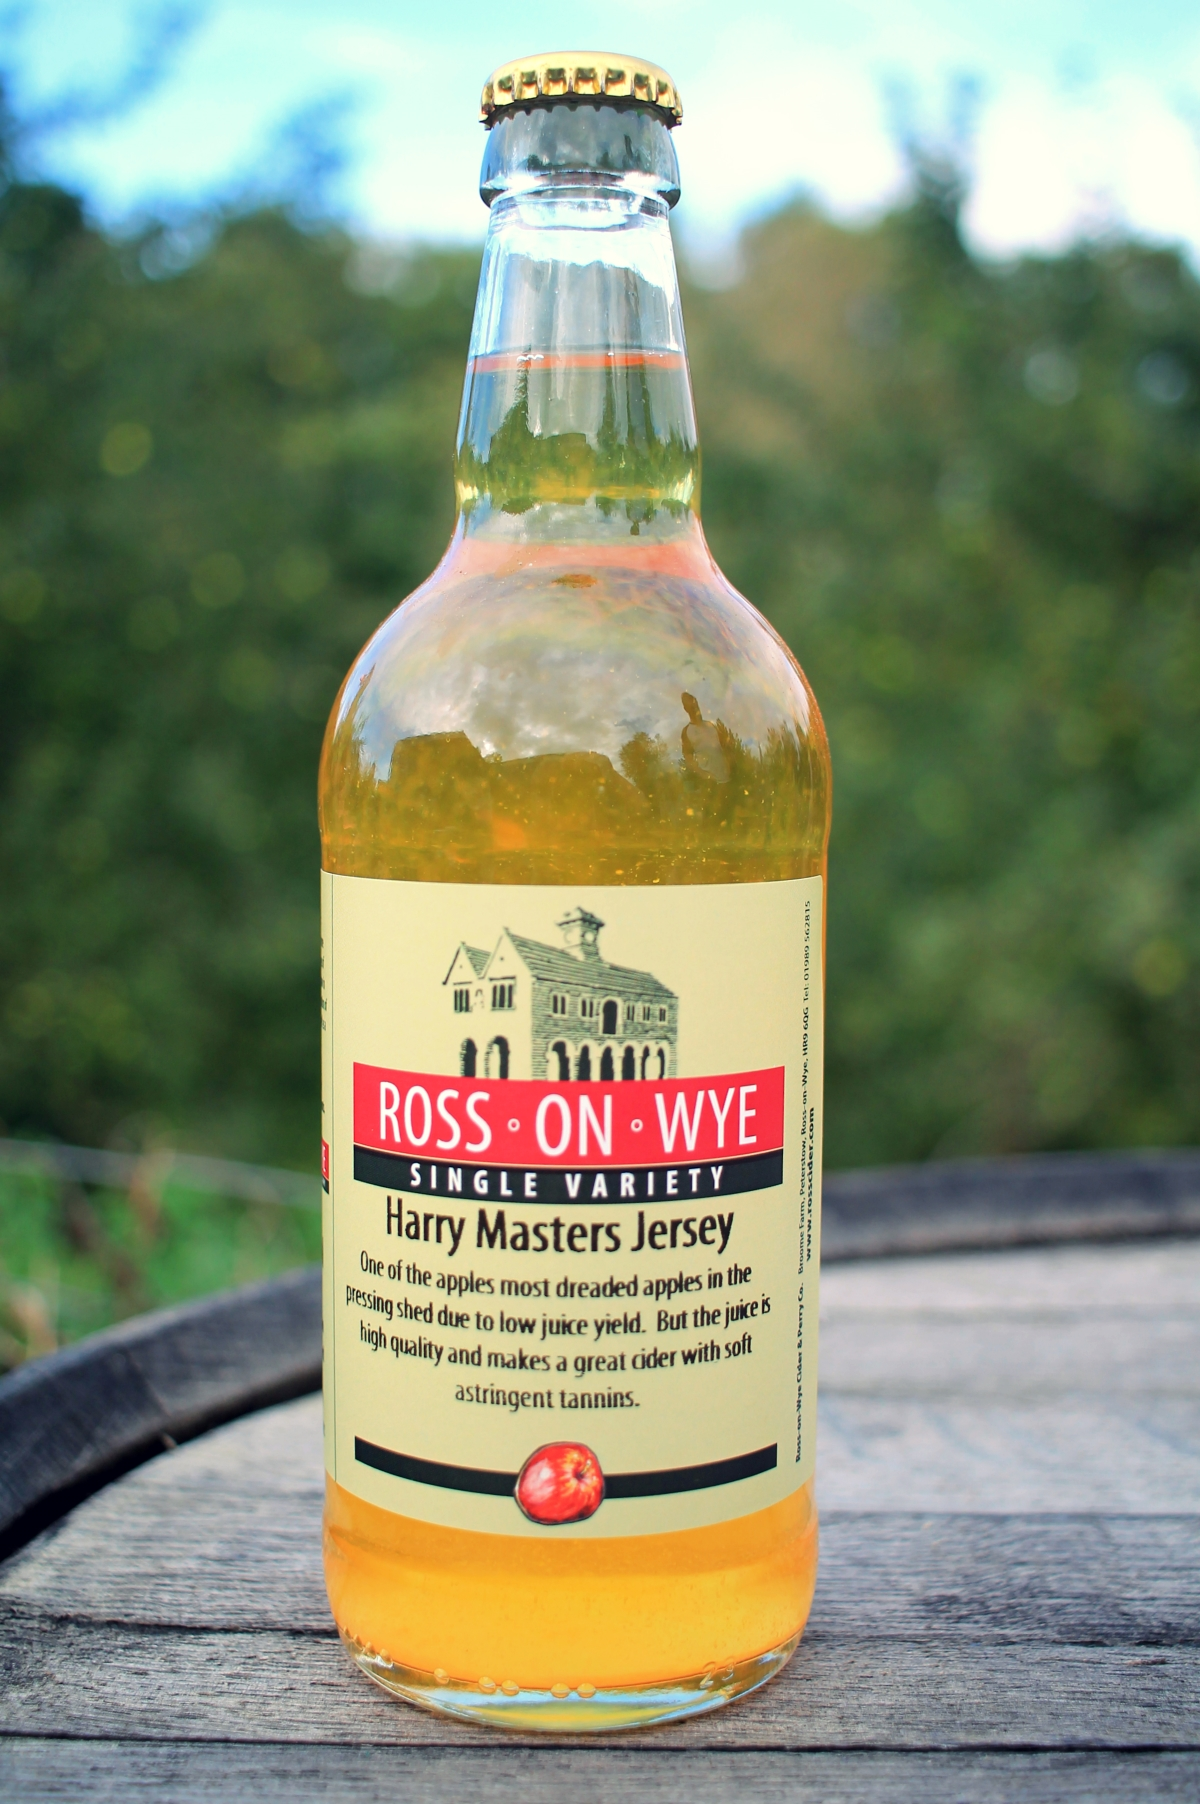 Harry Masters Jersey Cider